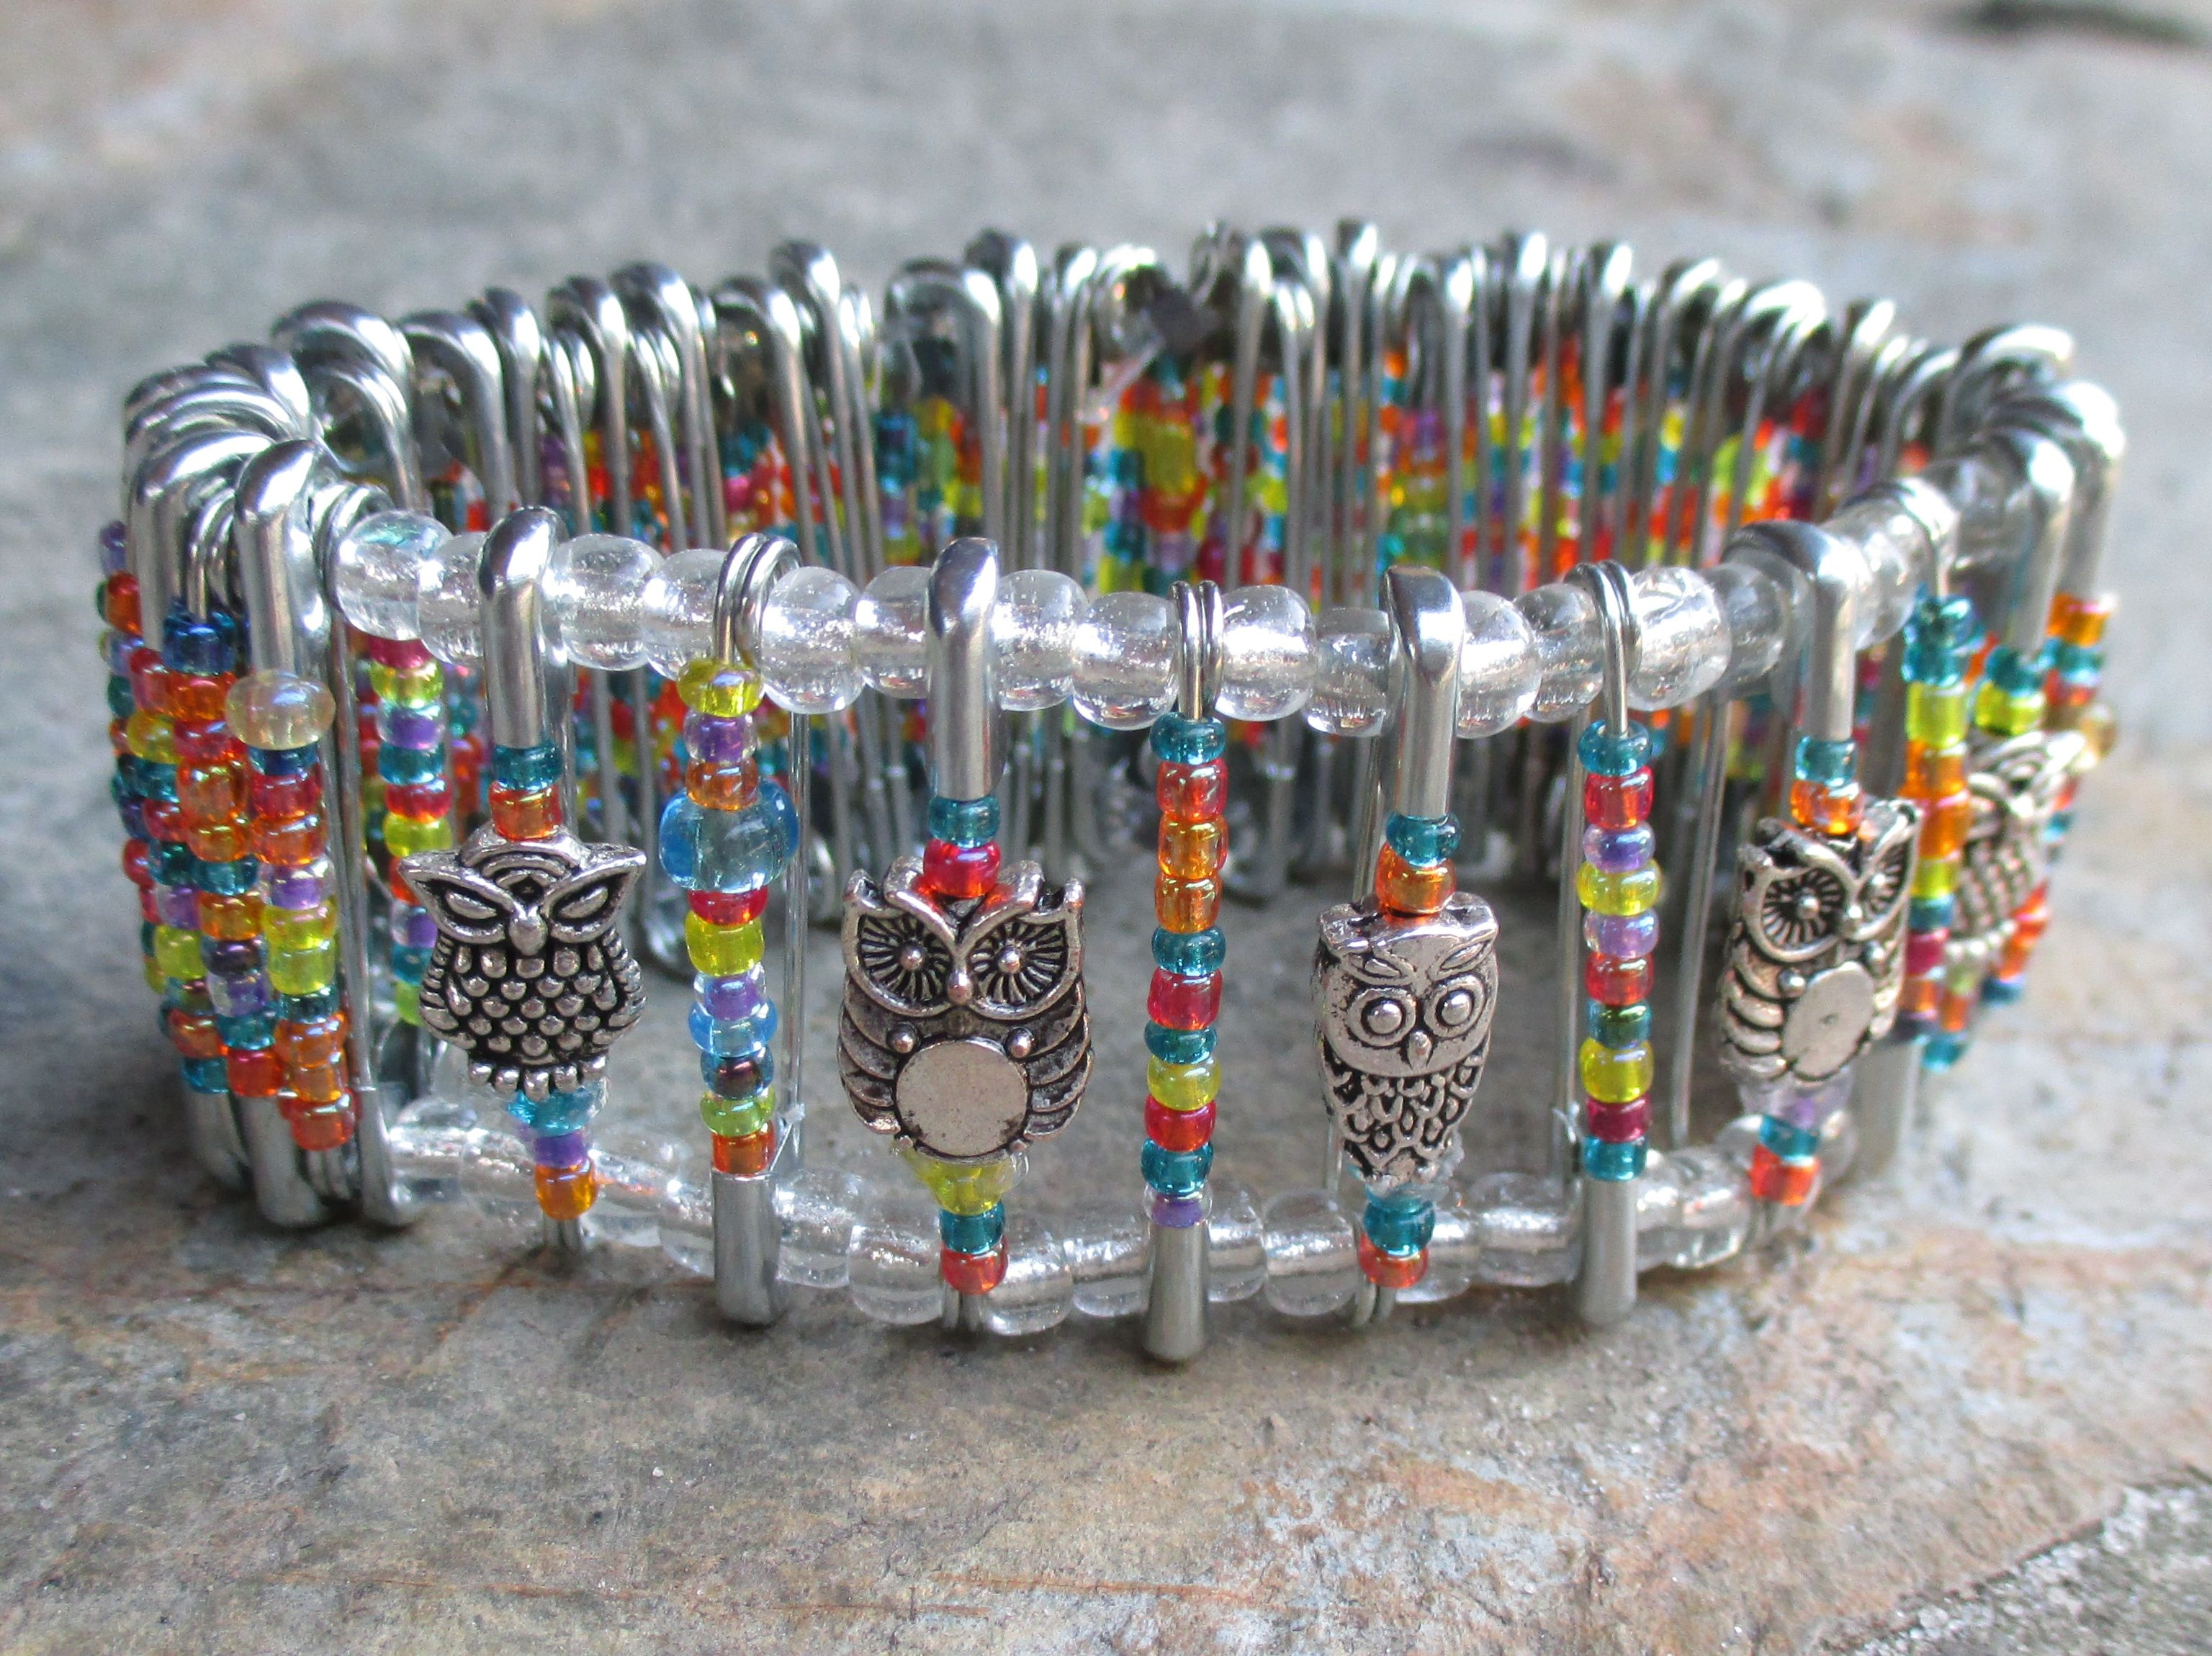 25 unique safety pin art ideas on pinterest safety pins safety bracelet made from safety pins seed beads and owl findings amipublicfo Gallery